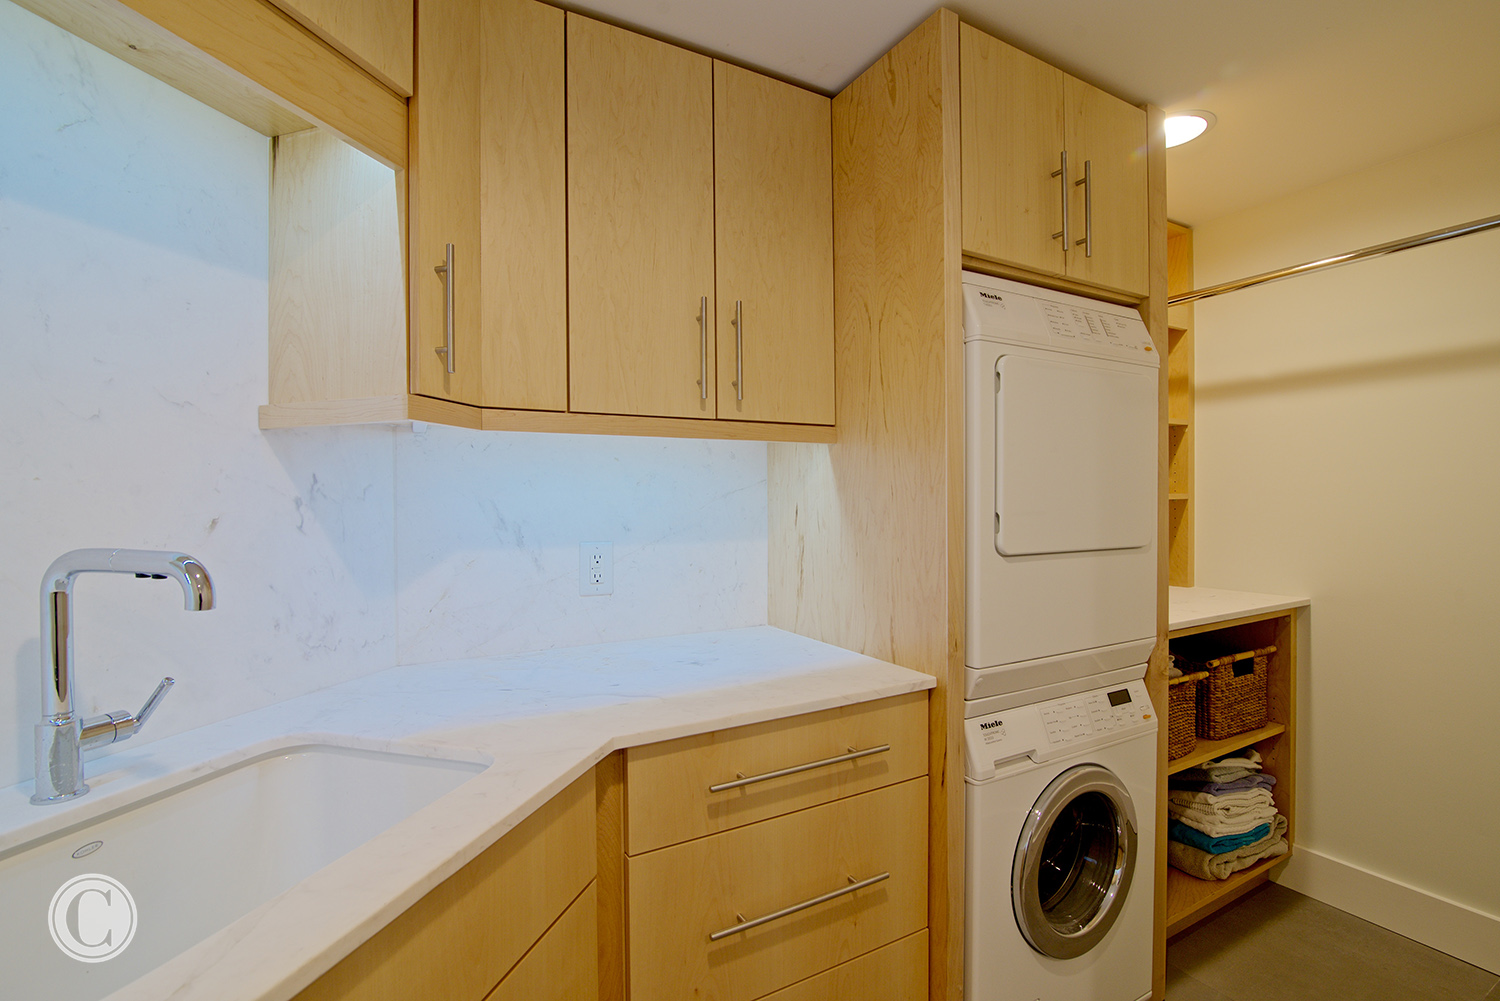 Jax Bch. Renovation, Acquilis Condominium, Laundry Room with Stacked Washer and Dryer | Cornelius Construction Company